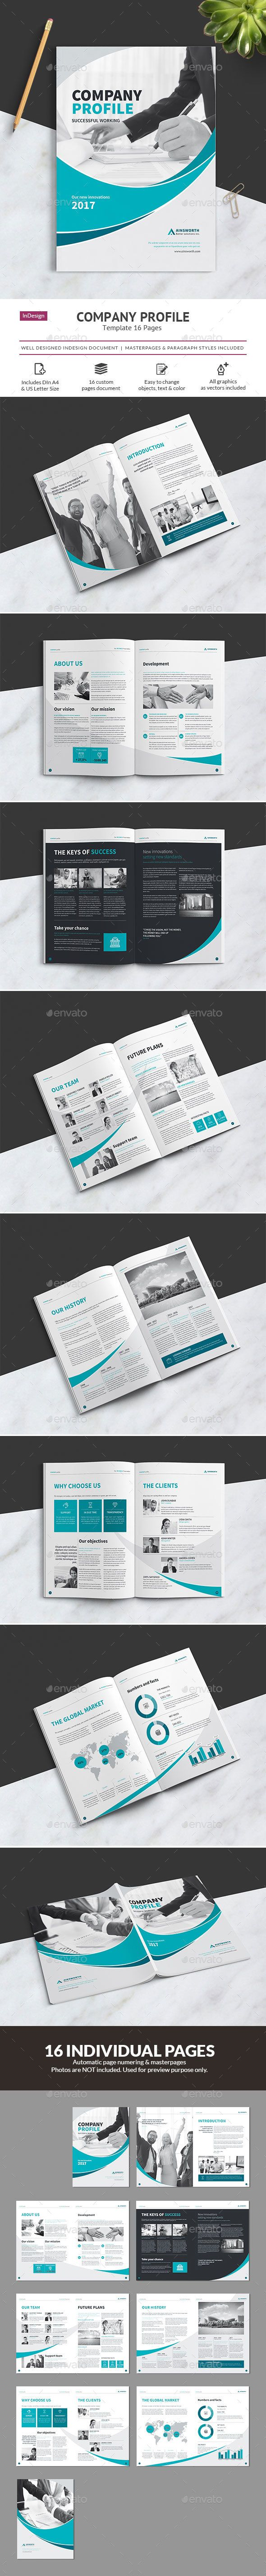 #Company Profile - #Brochures Print #Templates Download here: https://graphicriver.net/item/company-profile/19398496?ref=alena994